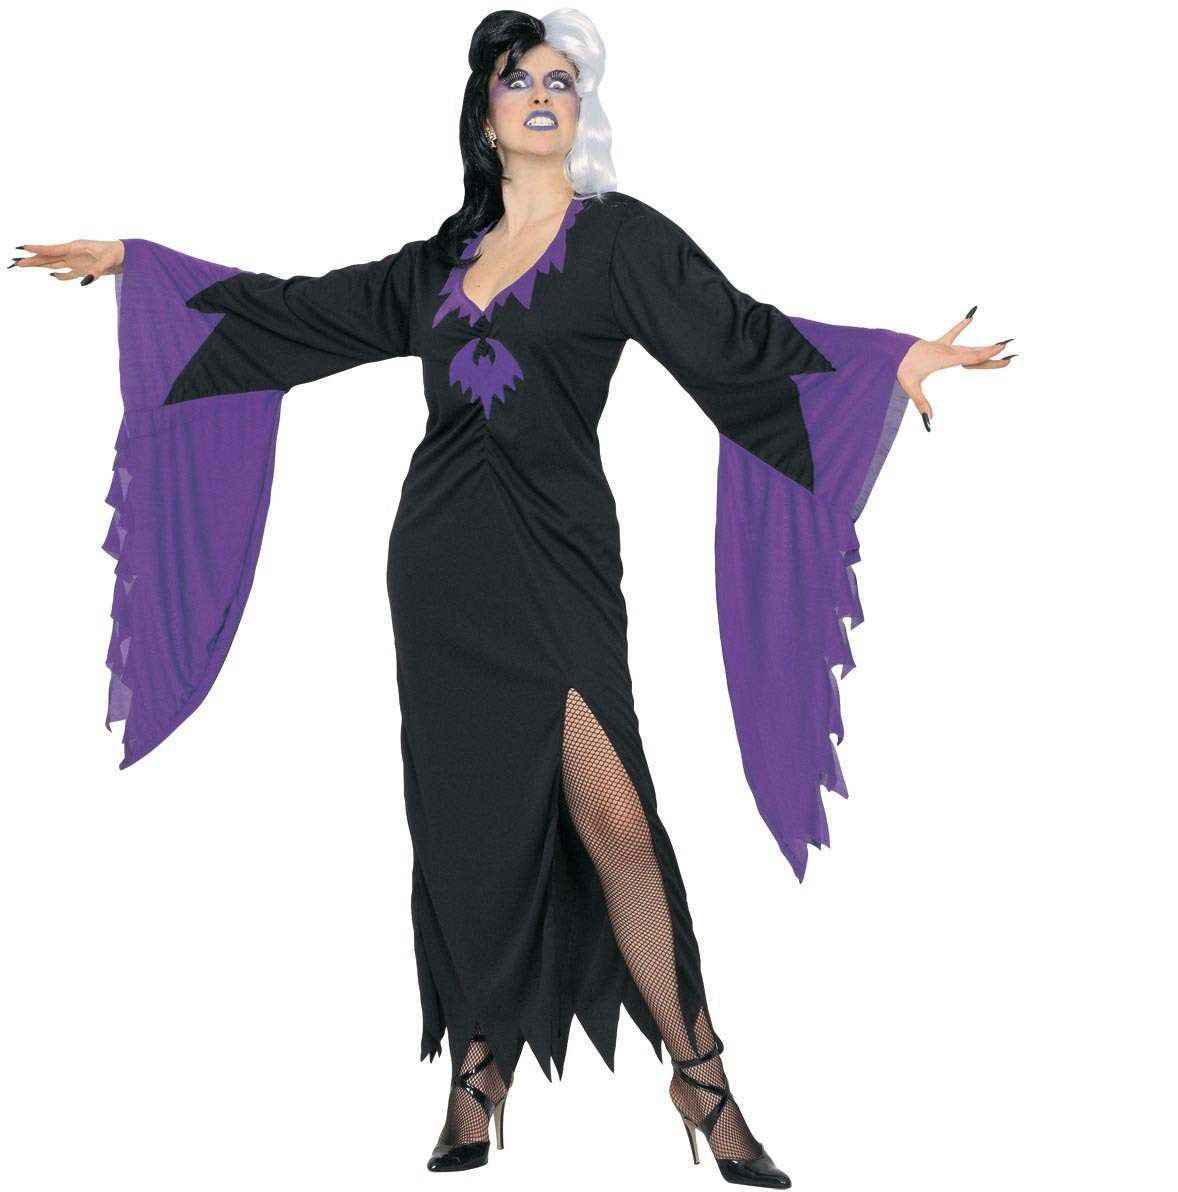 Xxl Mortisia Fancy Dress Costume (Halloween)